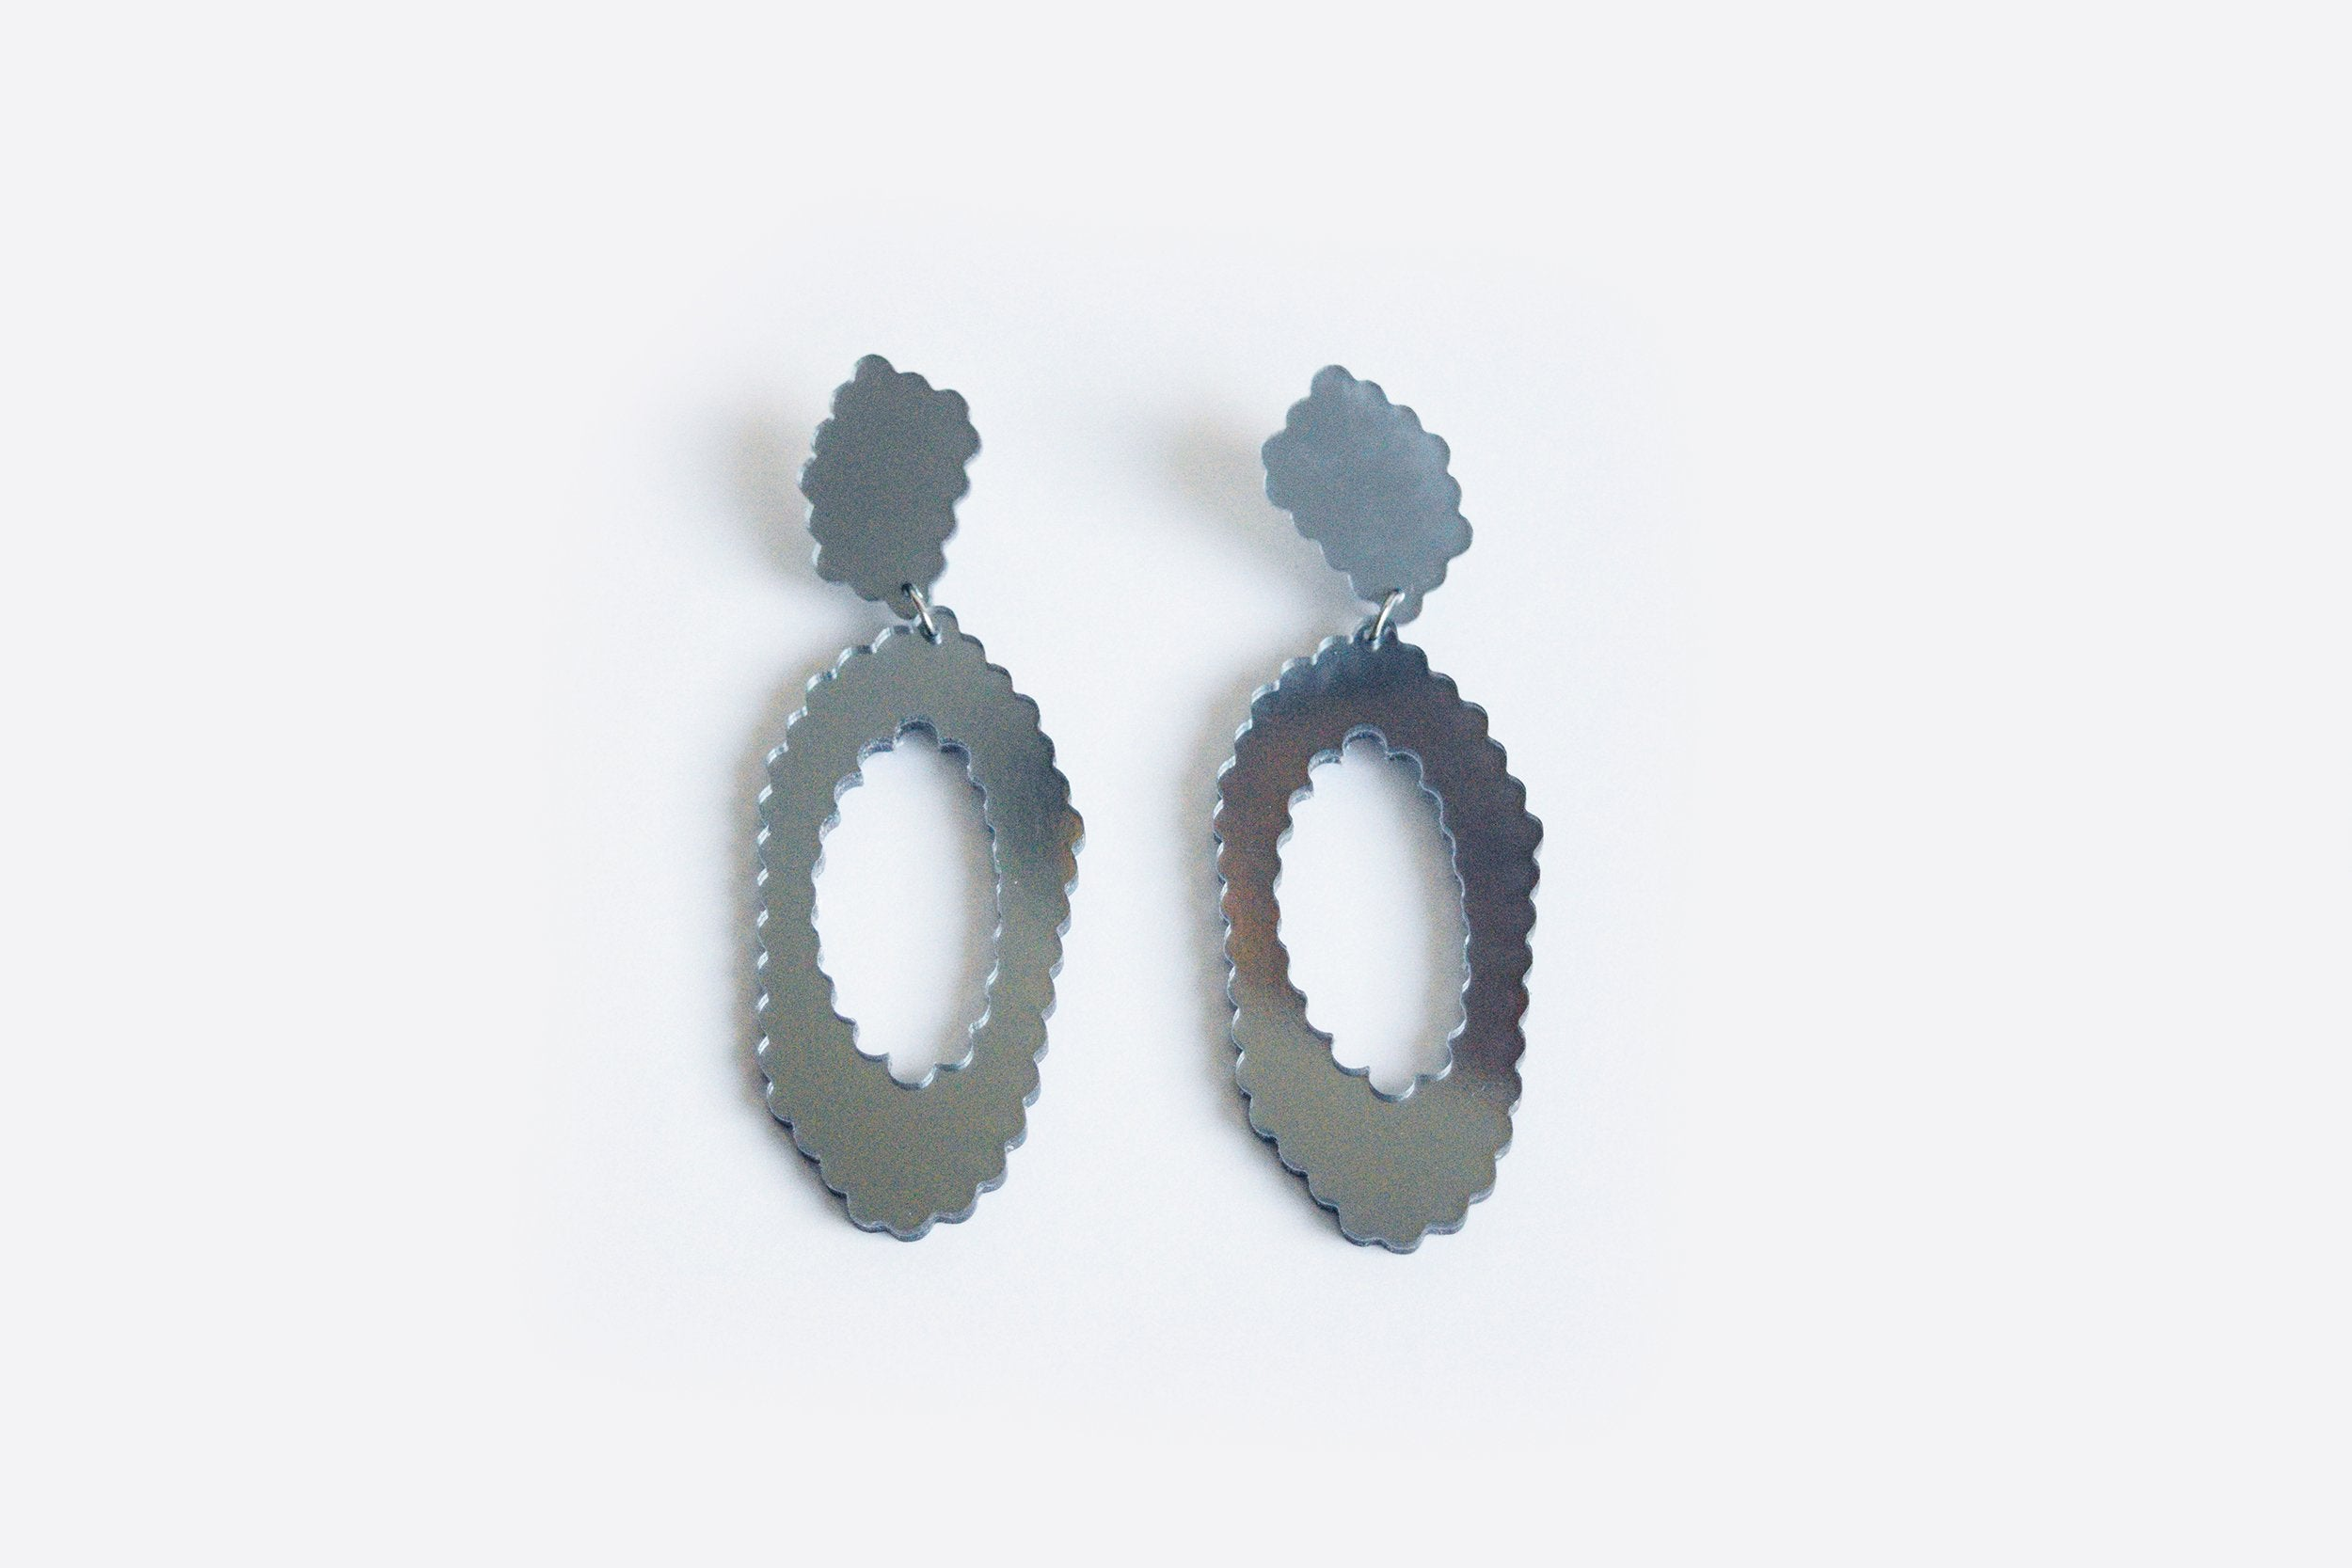 Ecoresin Scallop Earrings - Large Oval